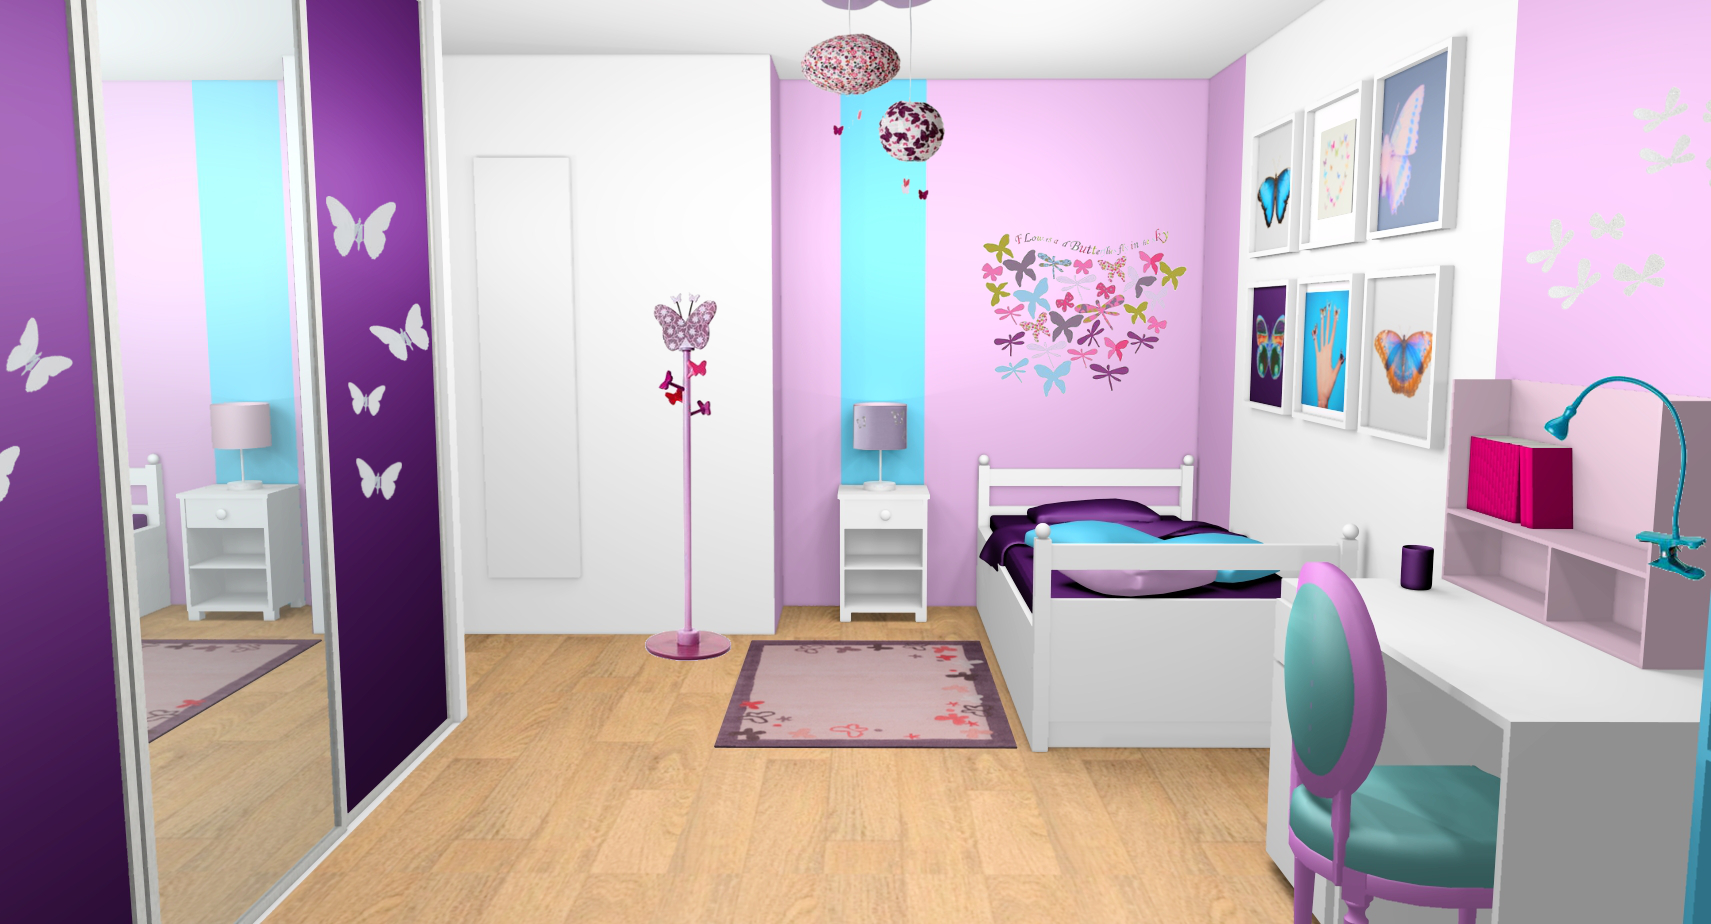 D coration interieur chambre fille for Decoration interieur chambre